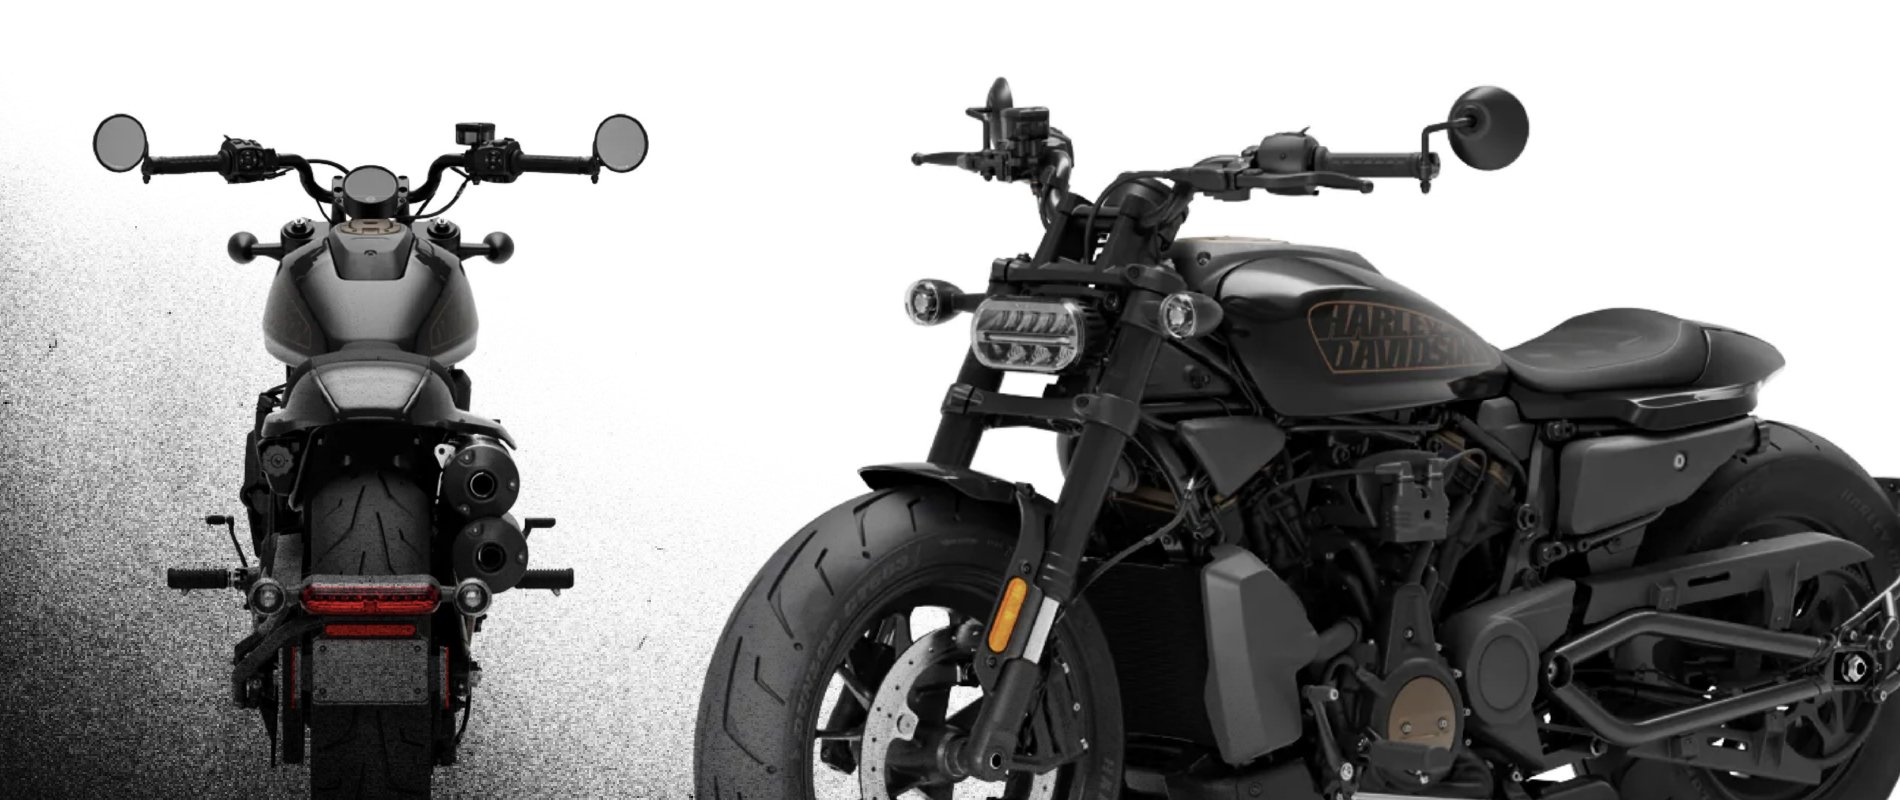 """This series has traditionally been """"old reliable"""" for Harley-Davidson—the company ships 40–70-thousand units a month, and the hope is that the S21 will help open up new markets at a price point of about $15K."""